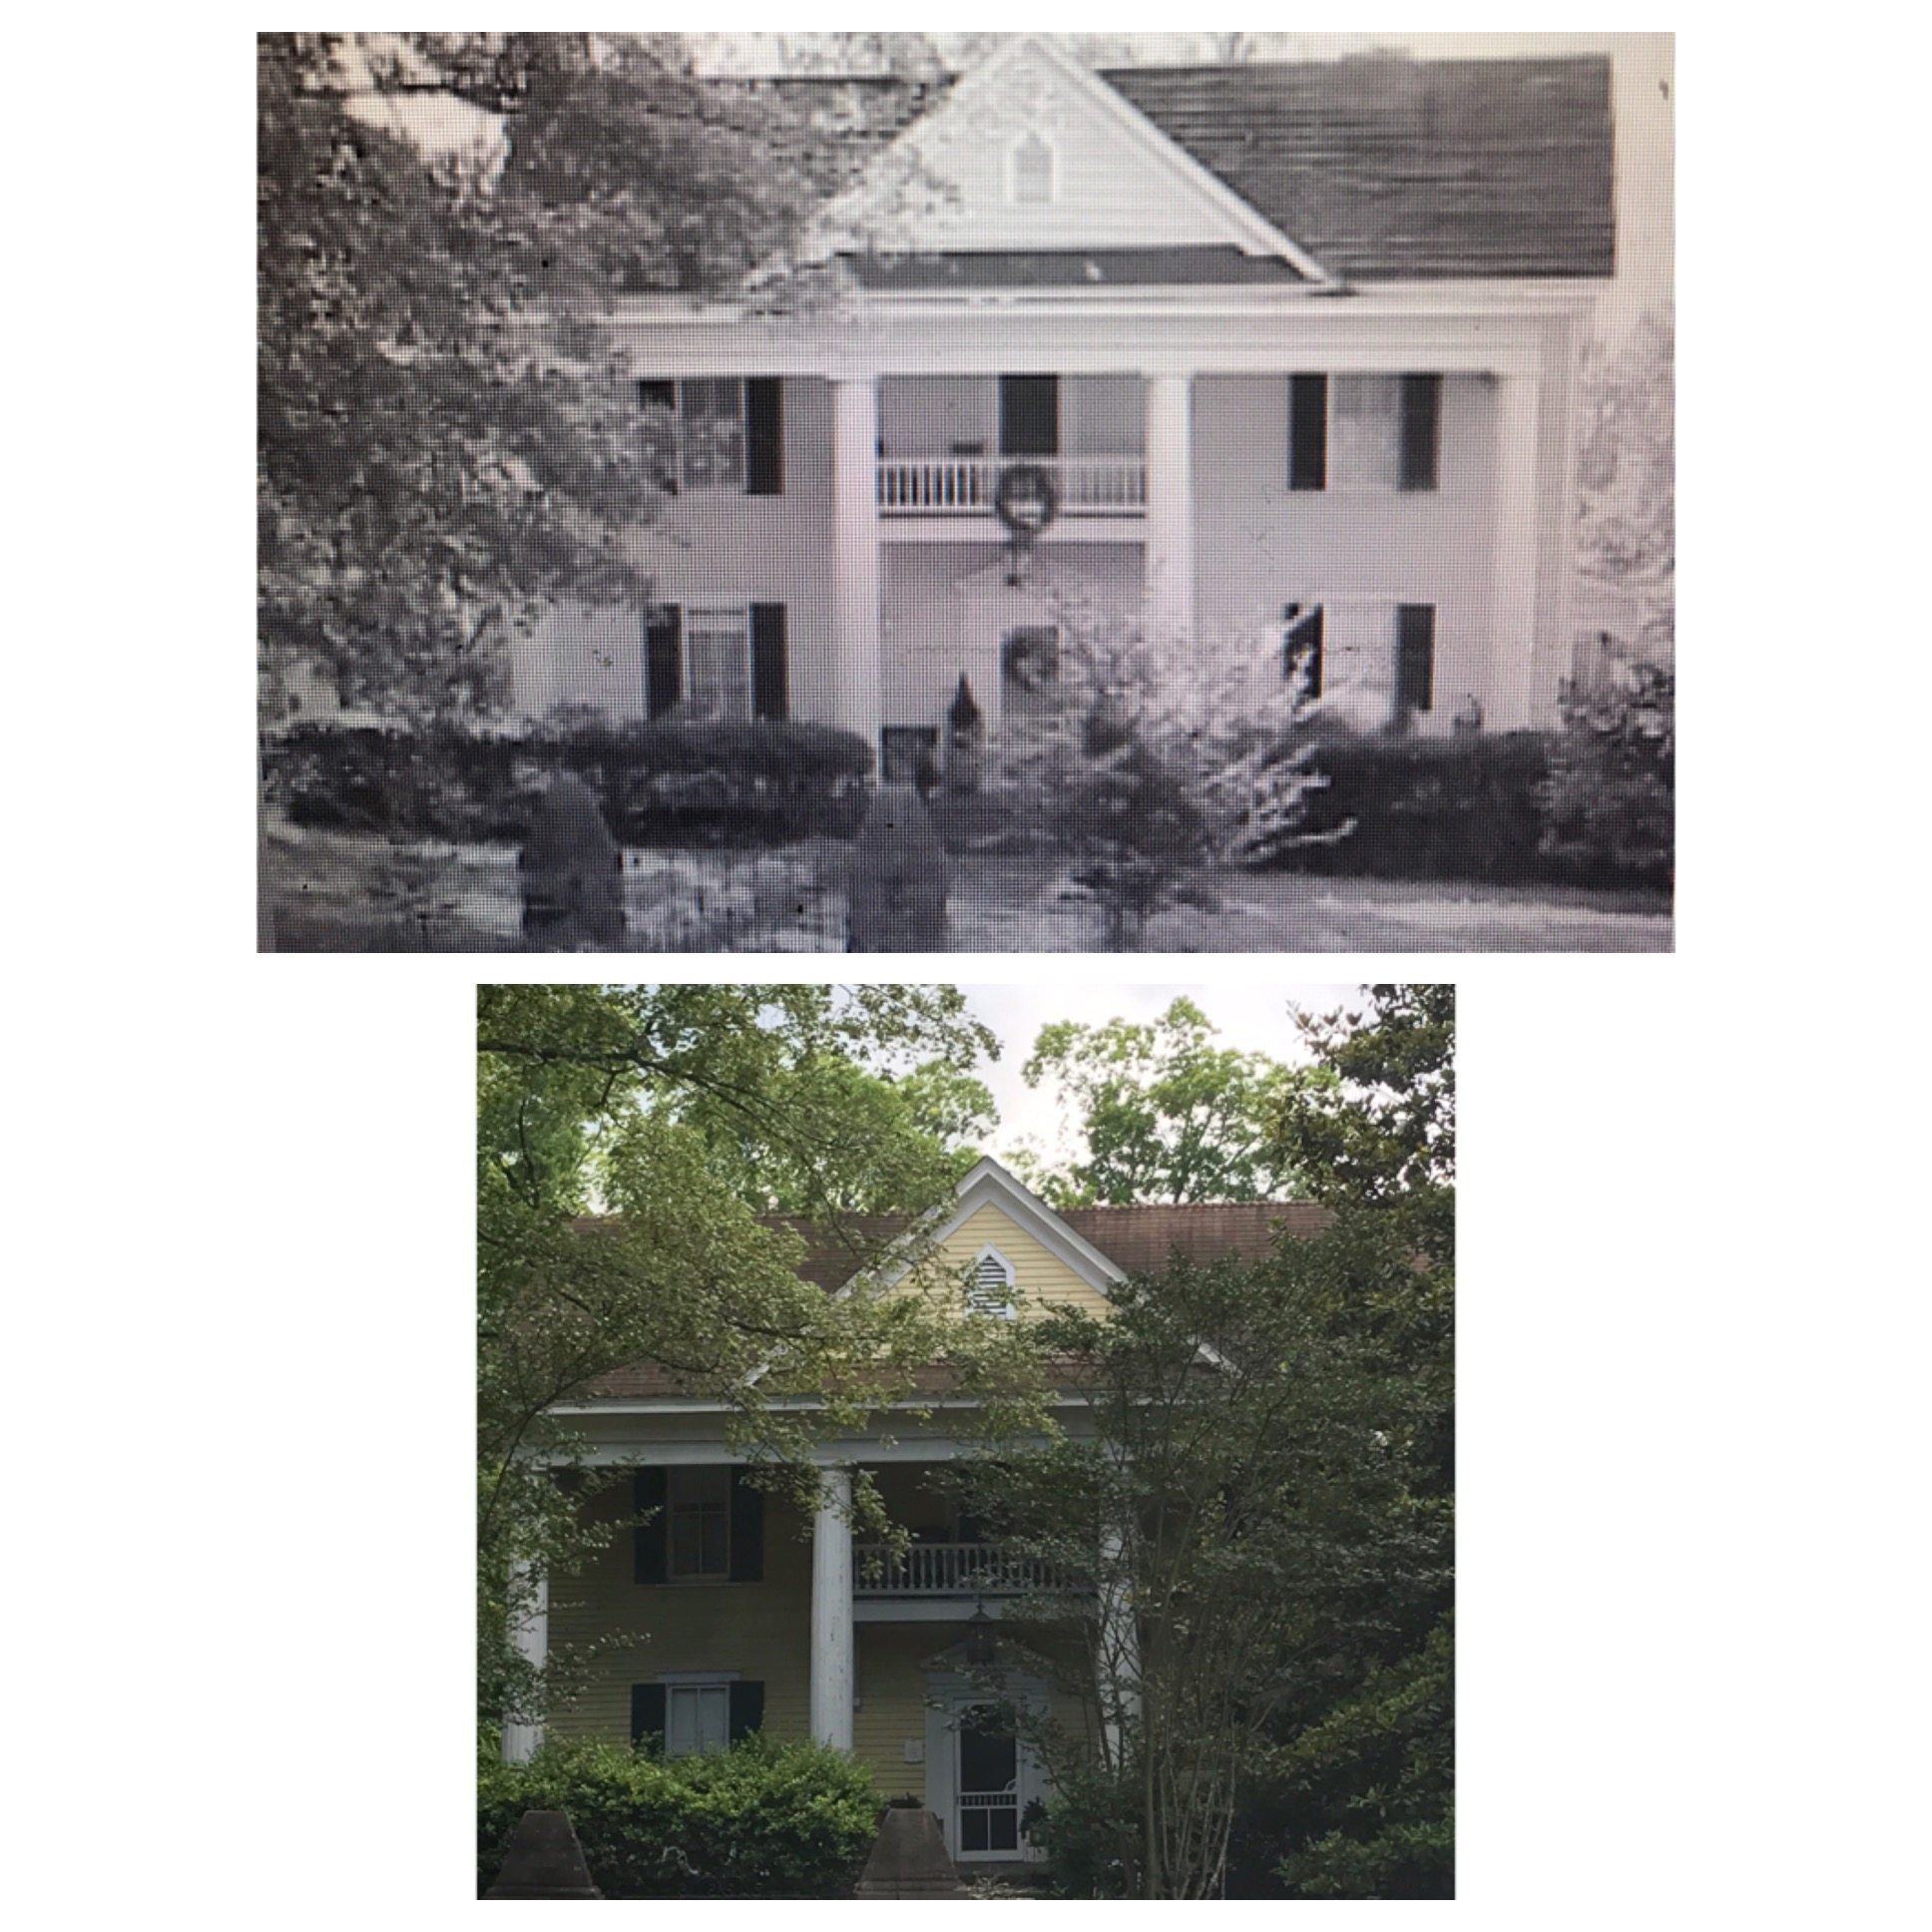 A comparison of an earlier photo taken of the Lemon House versus today.